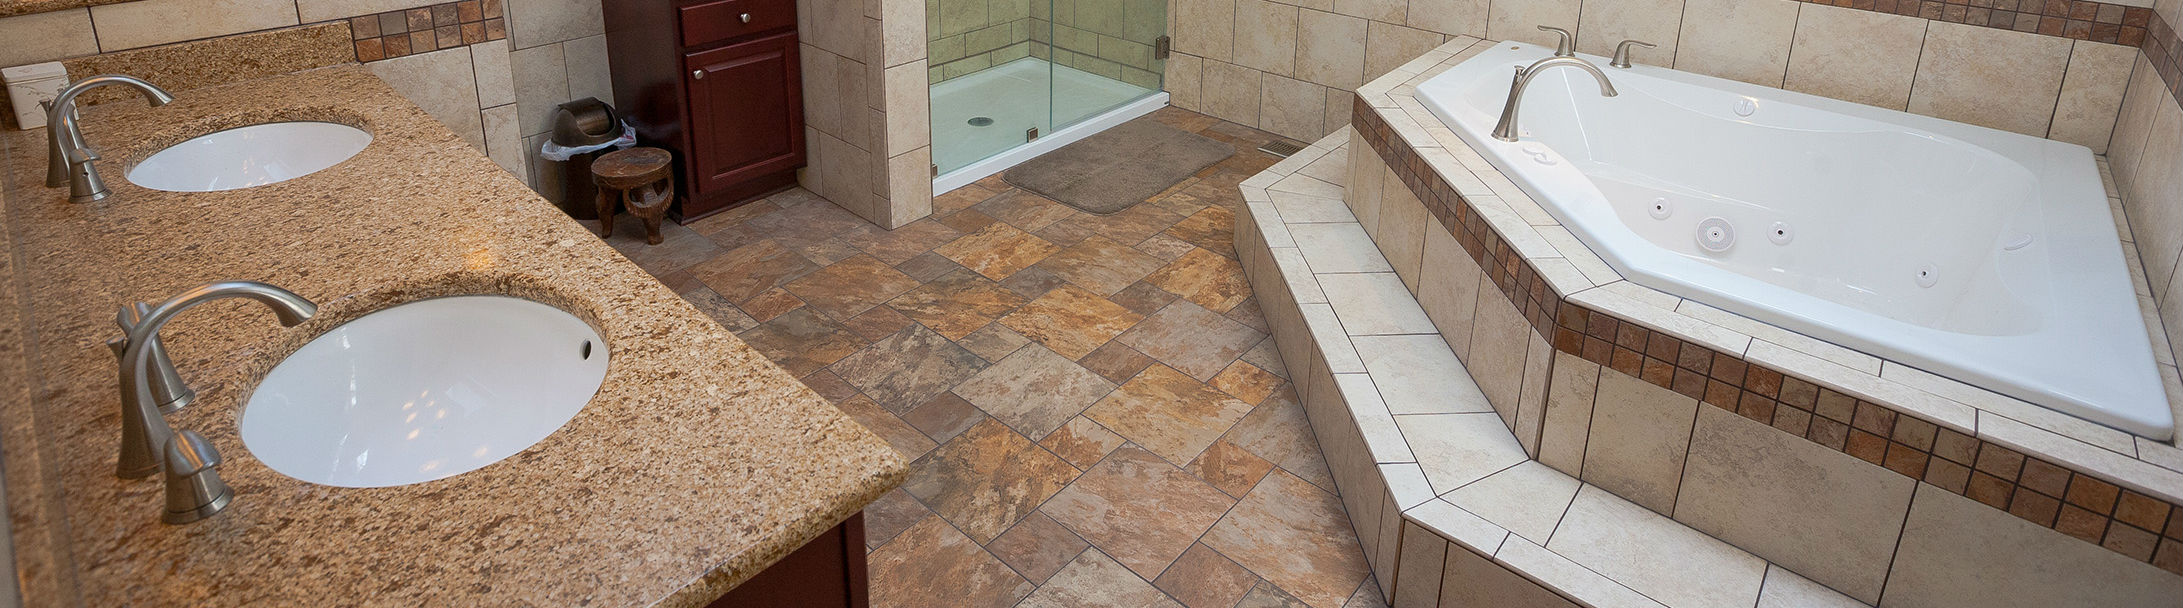 Local Bathroom and Kitchen Remodeling Contractor in Anchorage AK